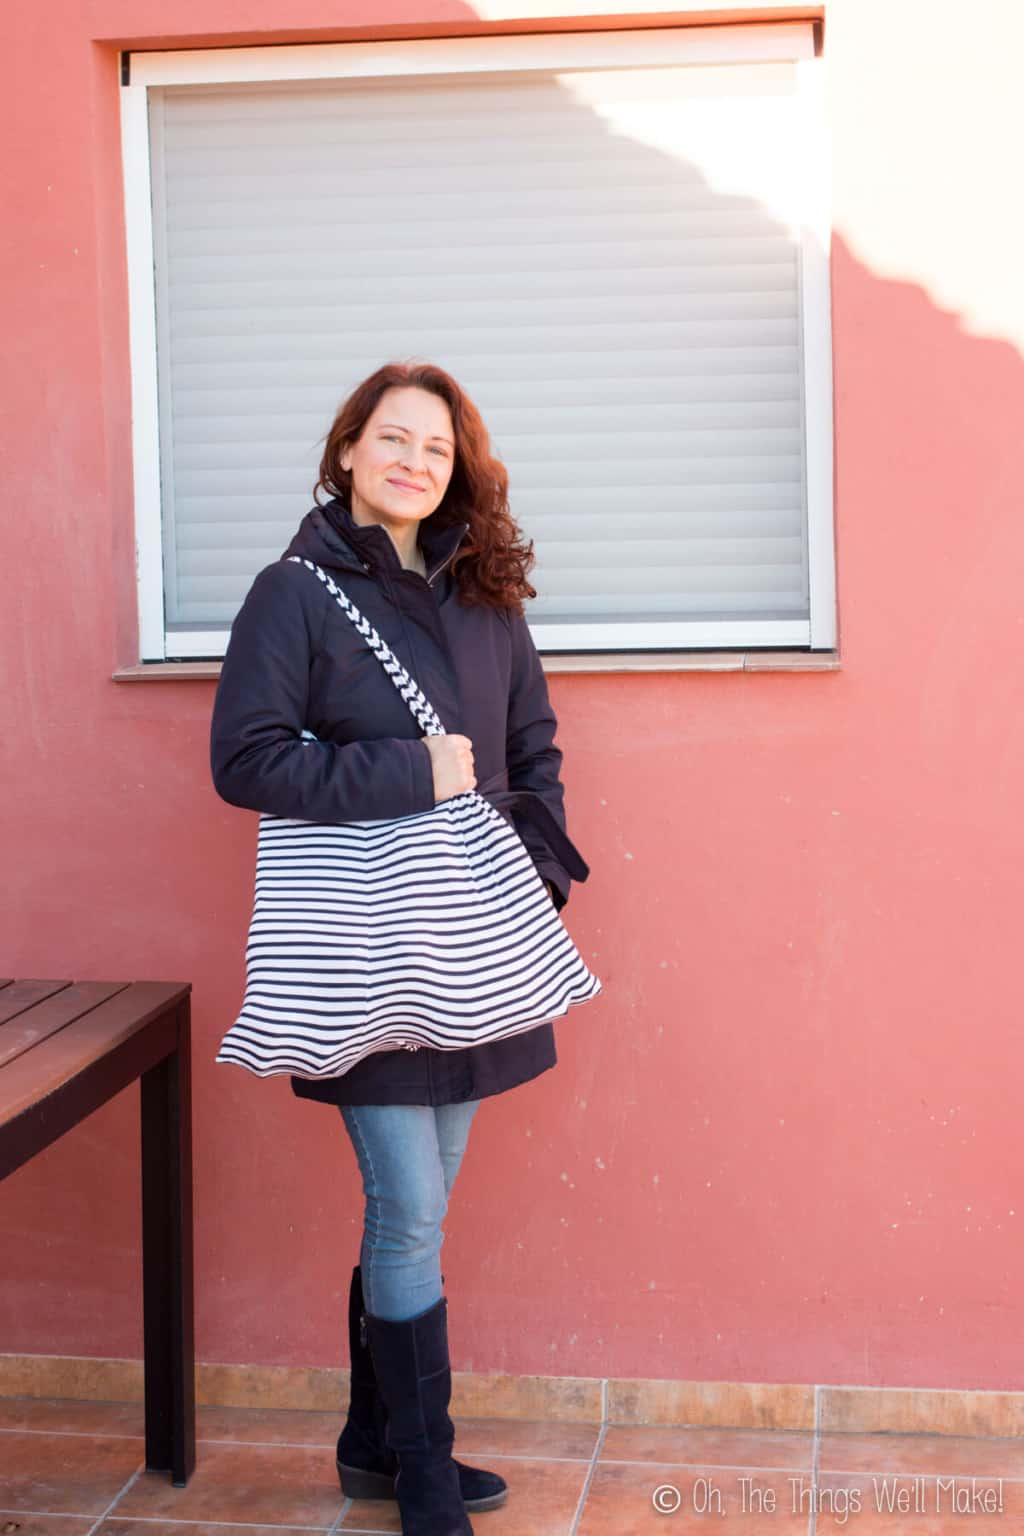 A caucasian woman smiling wearing a navy blue coat and denim jeans with boots, wearing her handmade striped t-shirt bag..